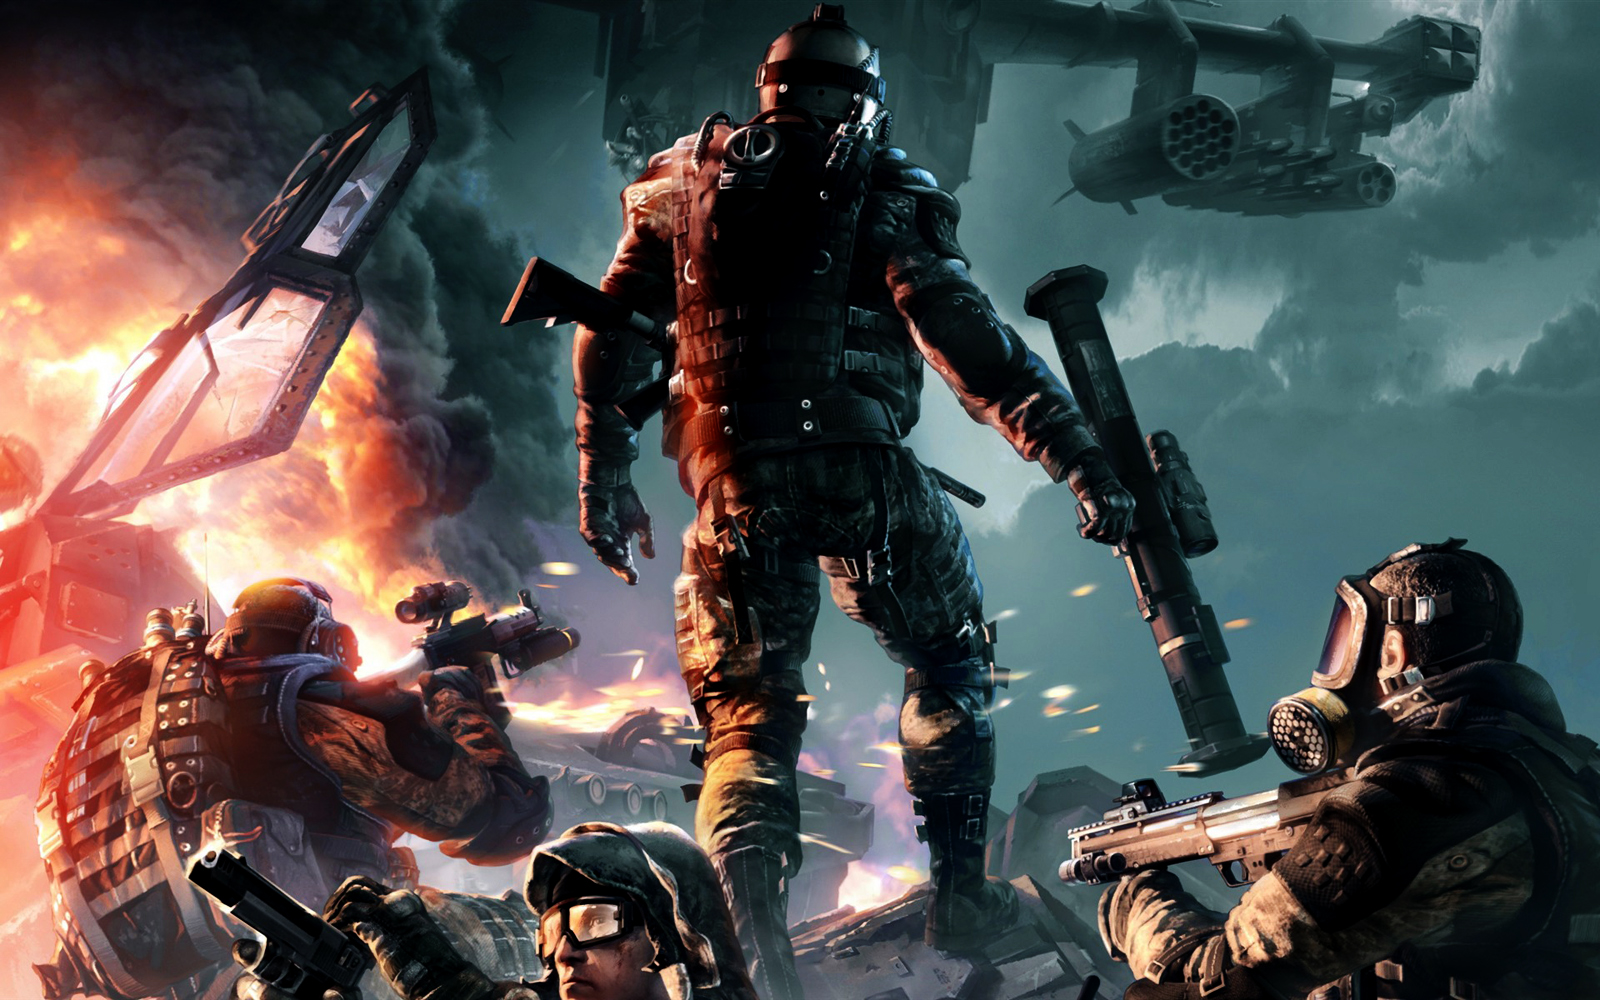 http://4.bp.blogspot.com/-CbiTfcXjy9w/UDuEChx18vI/AAAAAAAAD9w/Y0G4gNN0zzQ/s1600/Warface_Video_Game_HD_Wallpaper-GameWallBase.Com.jpg